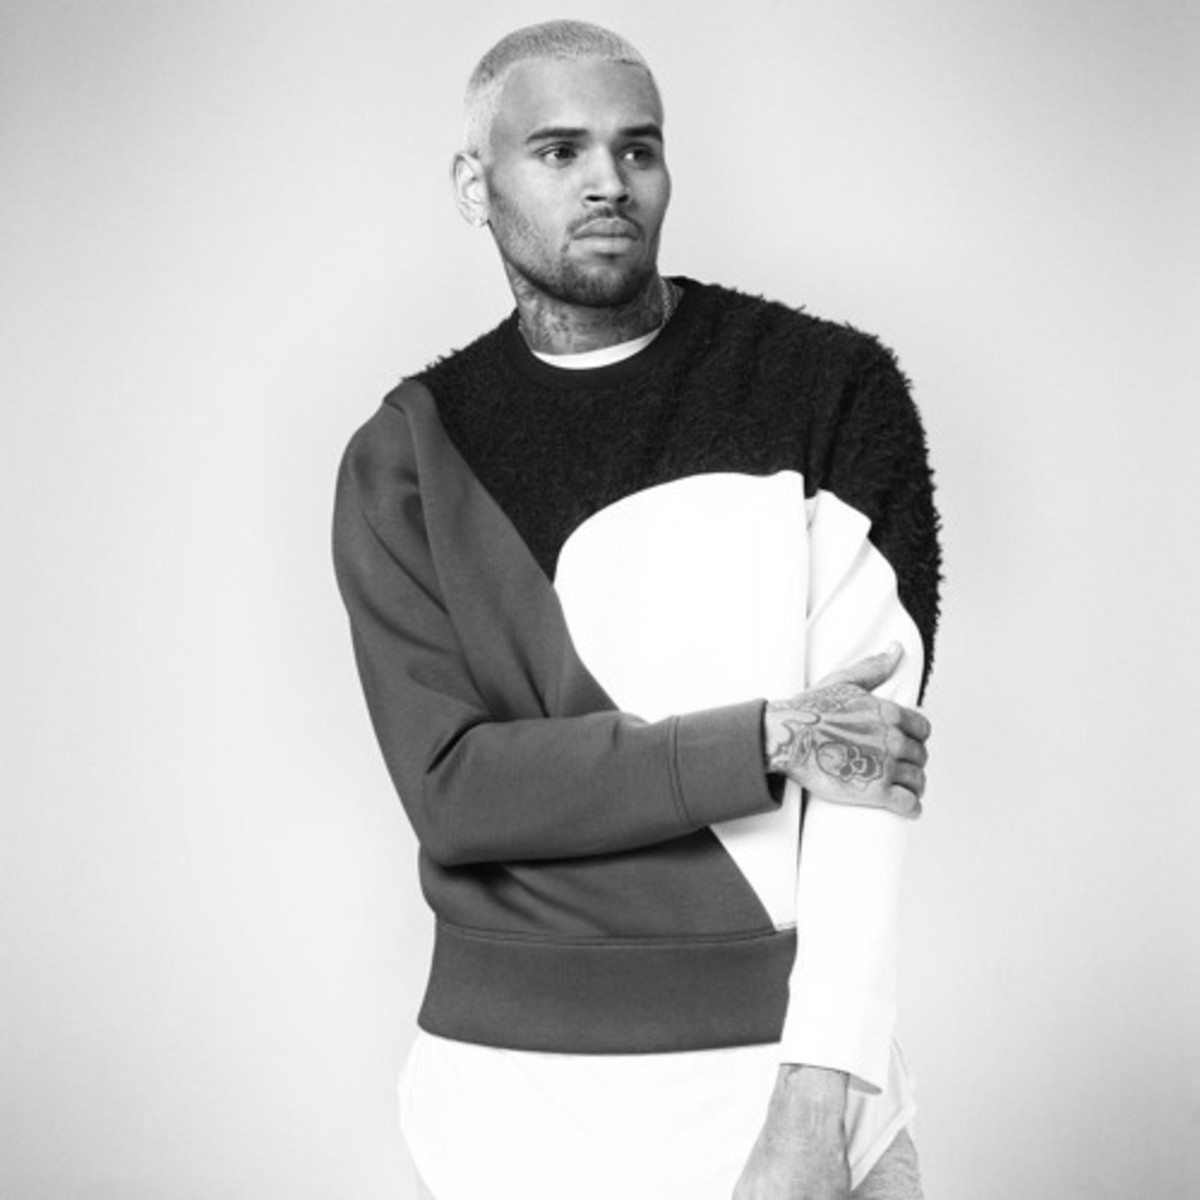 chris-brown-mftr-remix.jpg